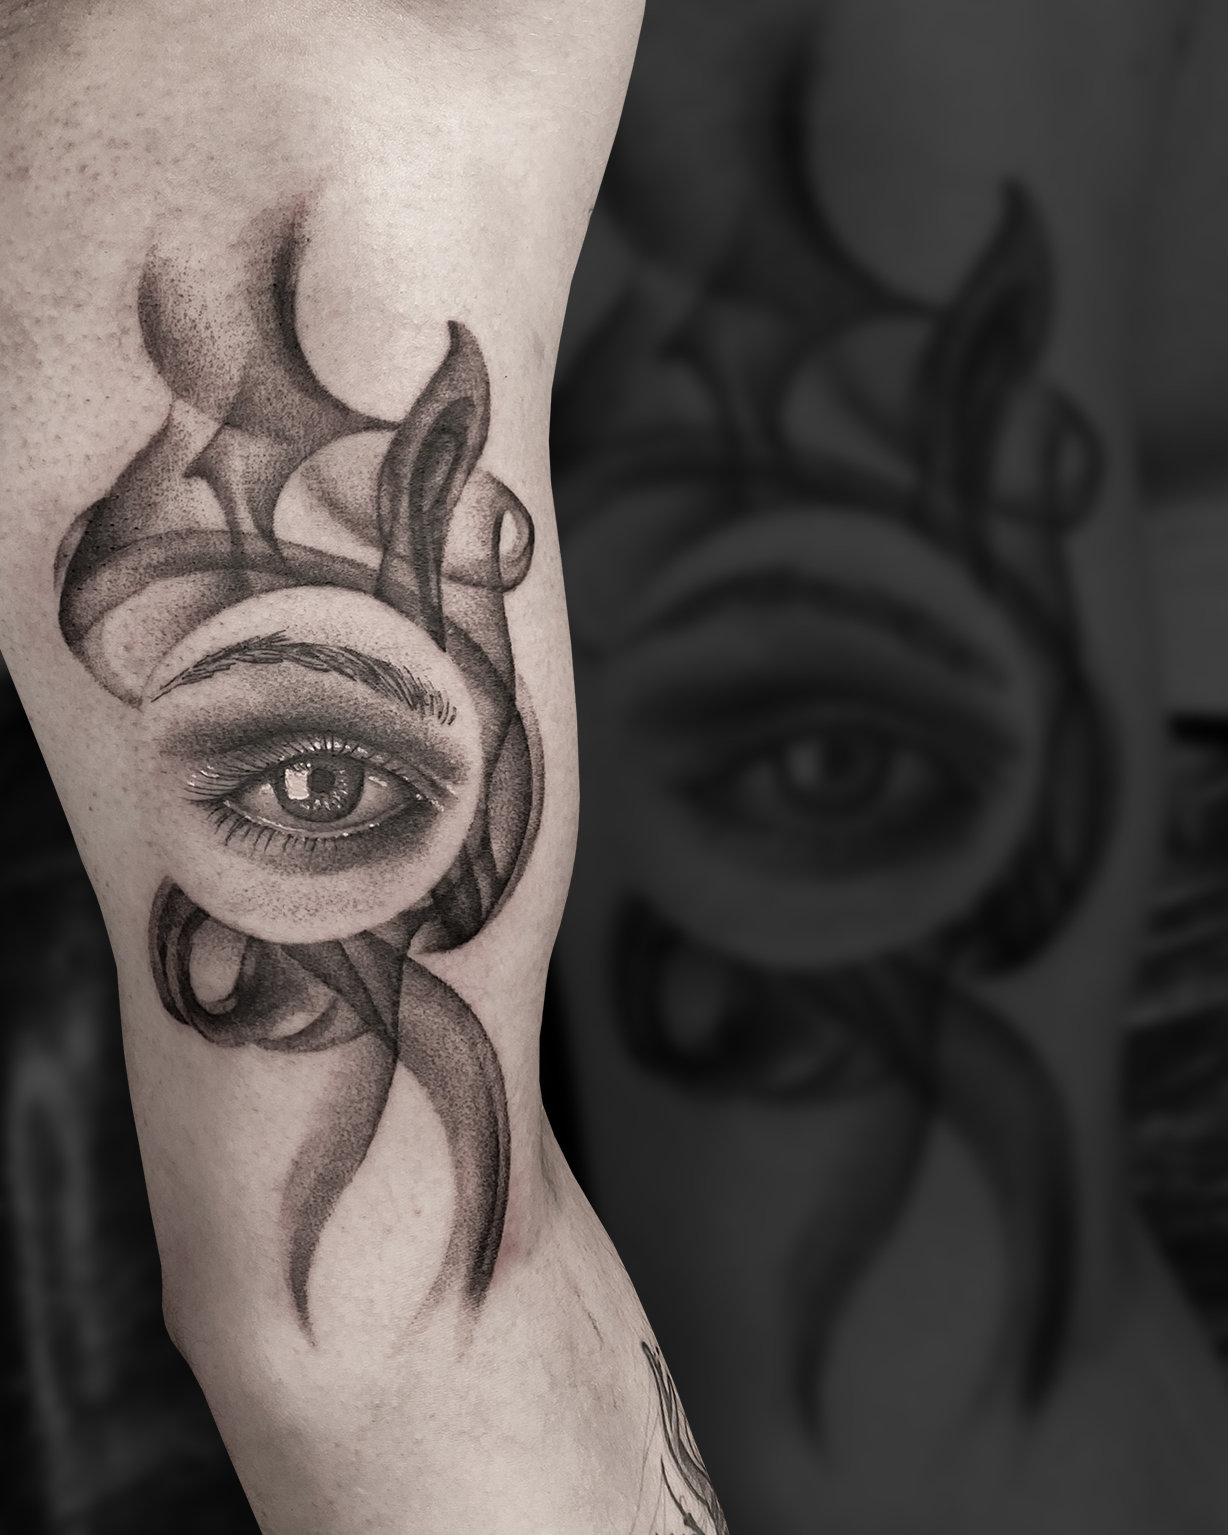 Tattoo Zincik - Smoke Eye